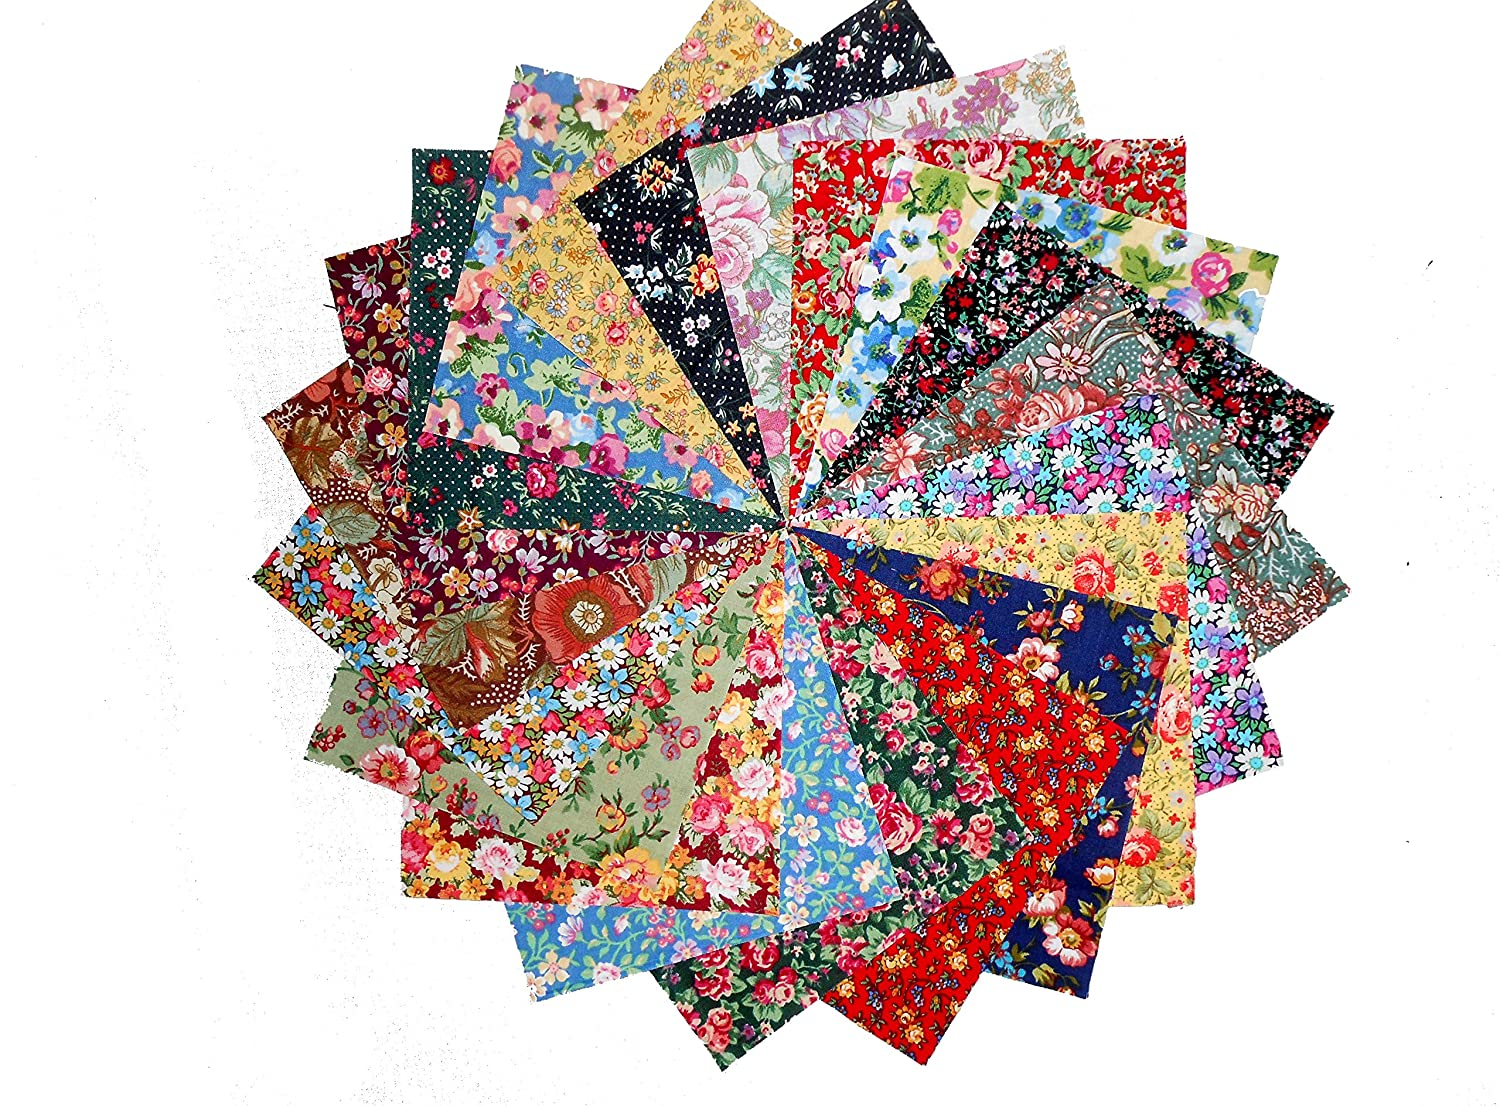 100 4 Among the Flowers Quilting Fabric Charm Pack 5 OF EACH 20 DIFFERENT PRINTS